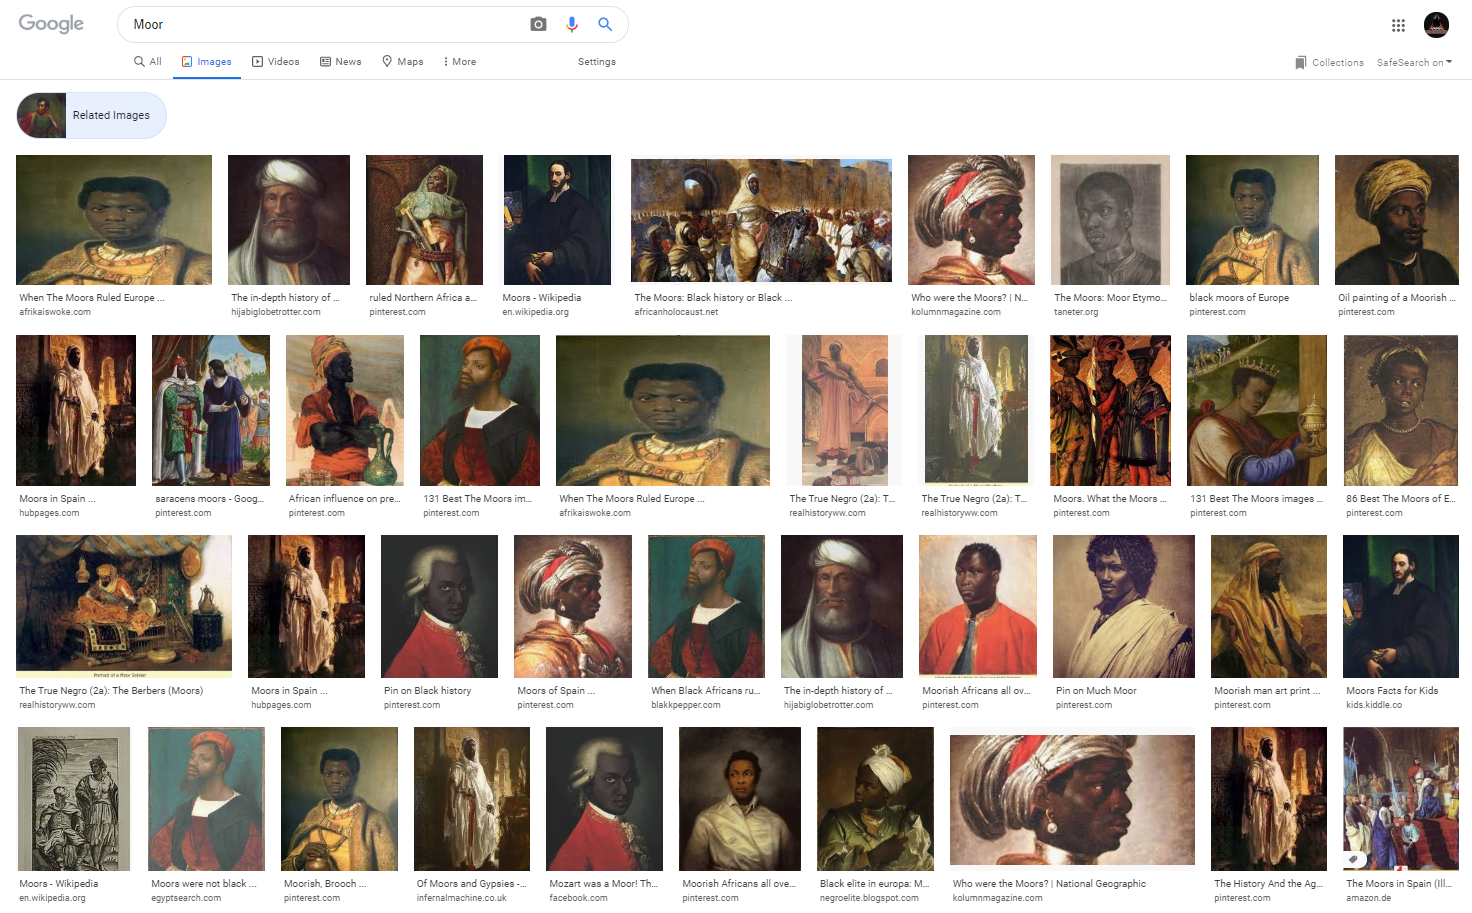 What is a Moor?